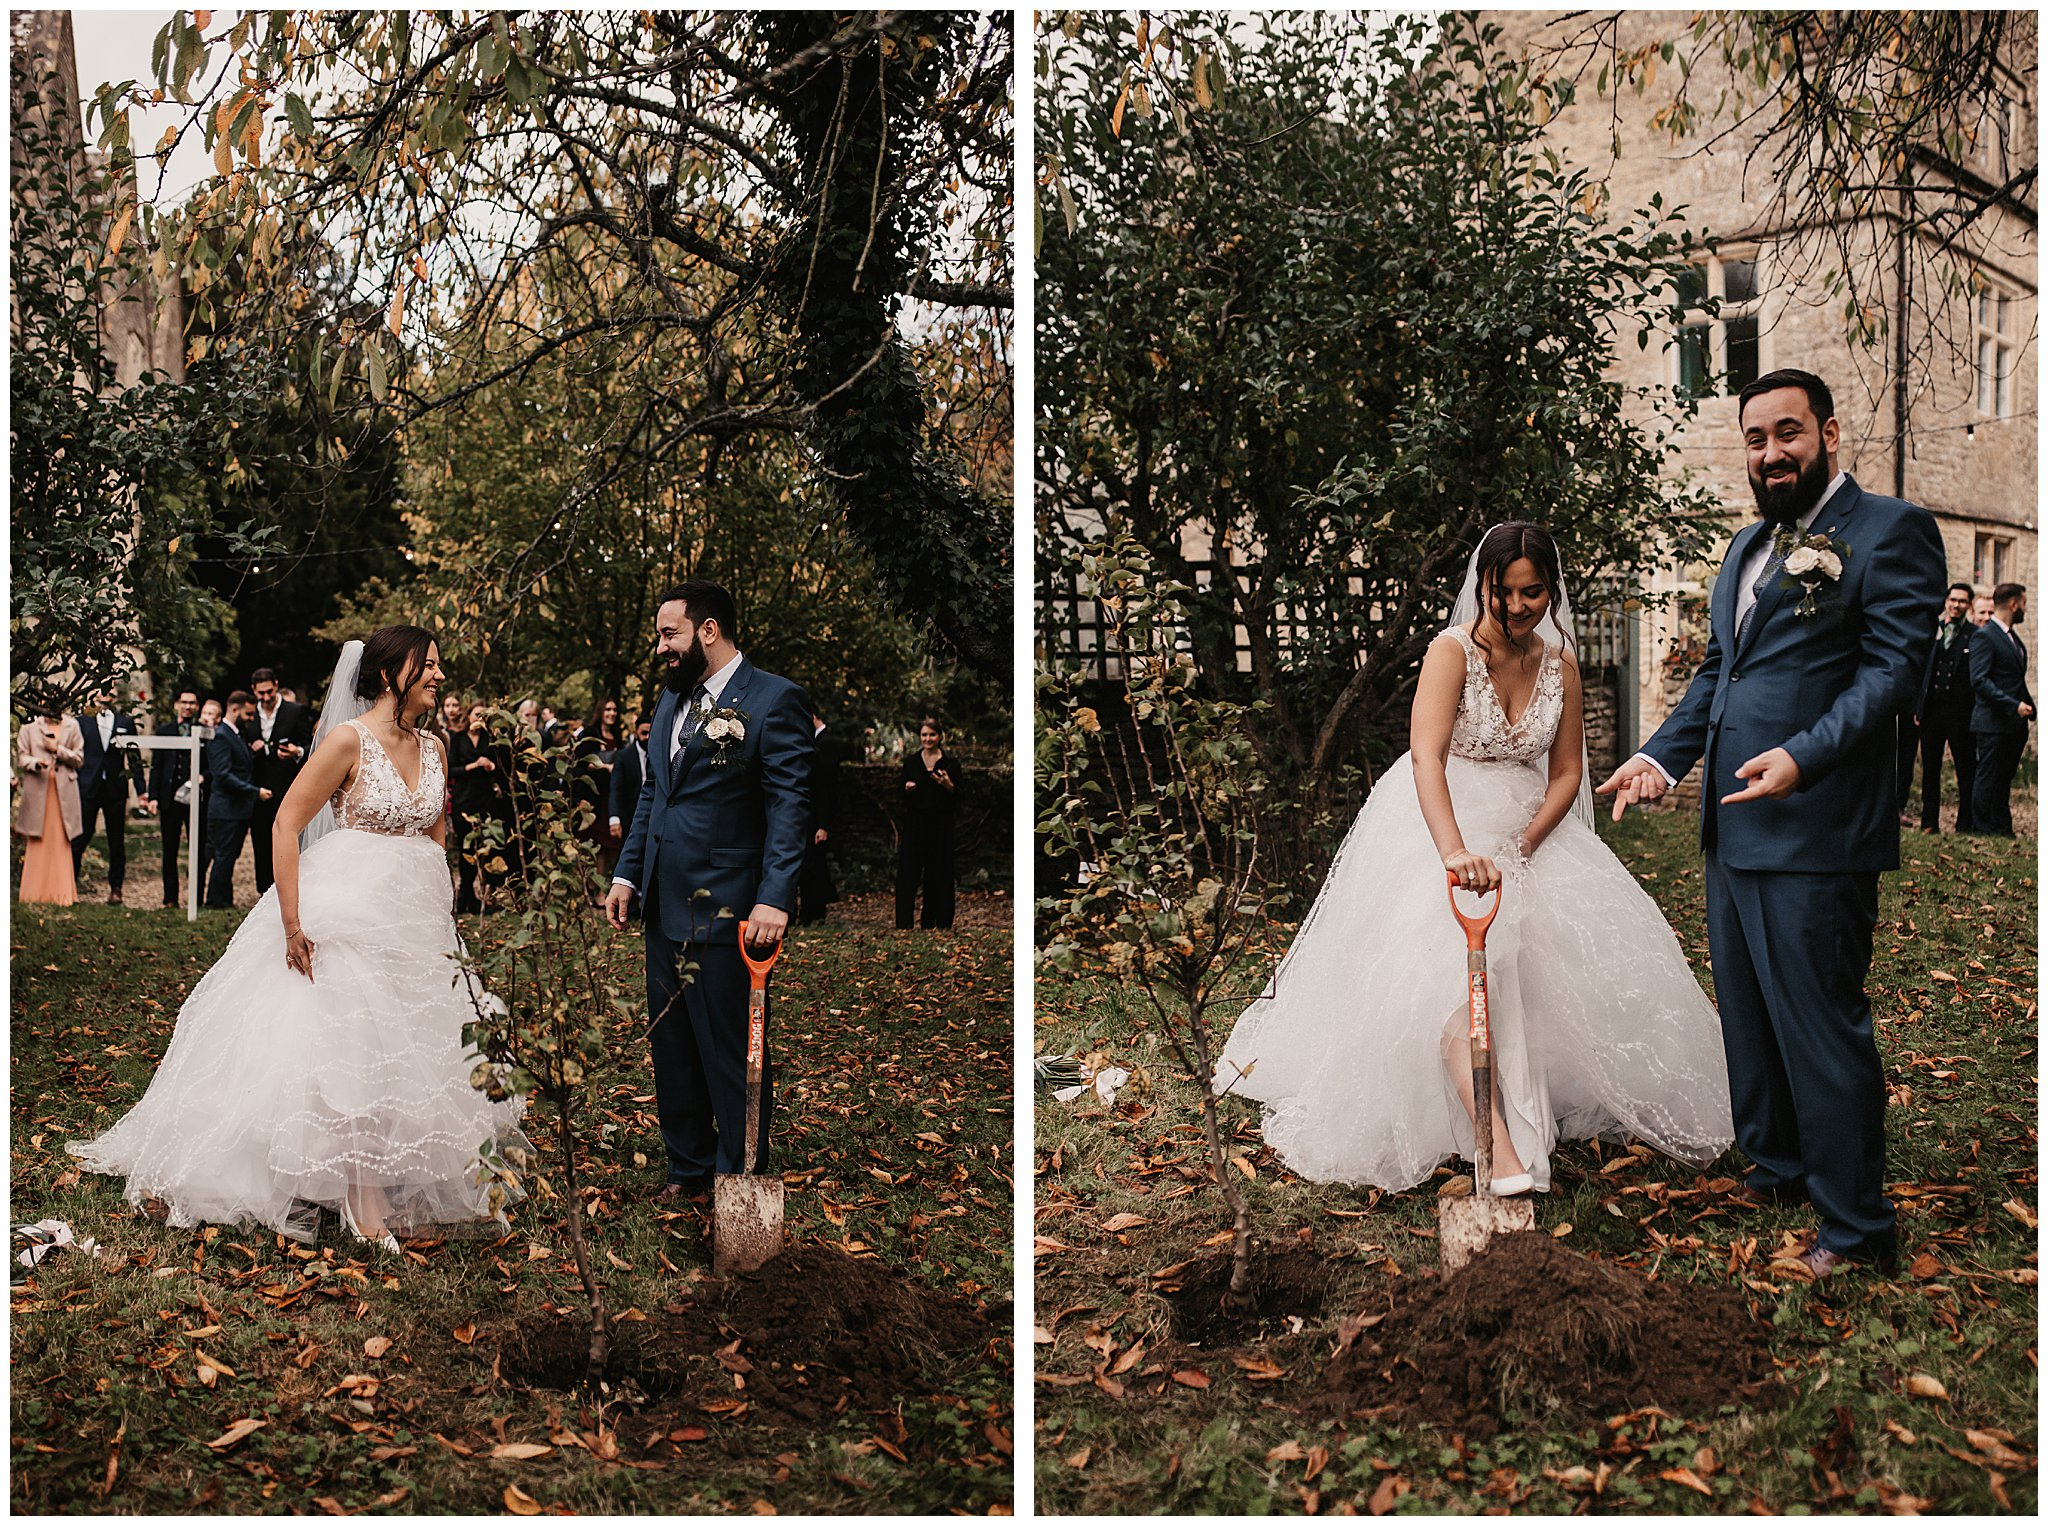 Max & Ksenia Autumnal Wiltshire Wedding-289.jpg